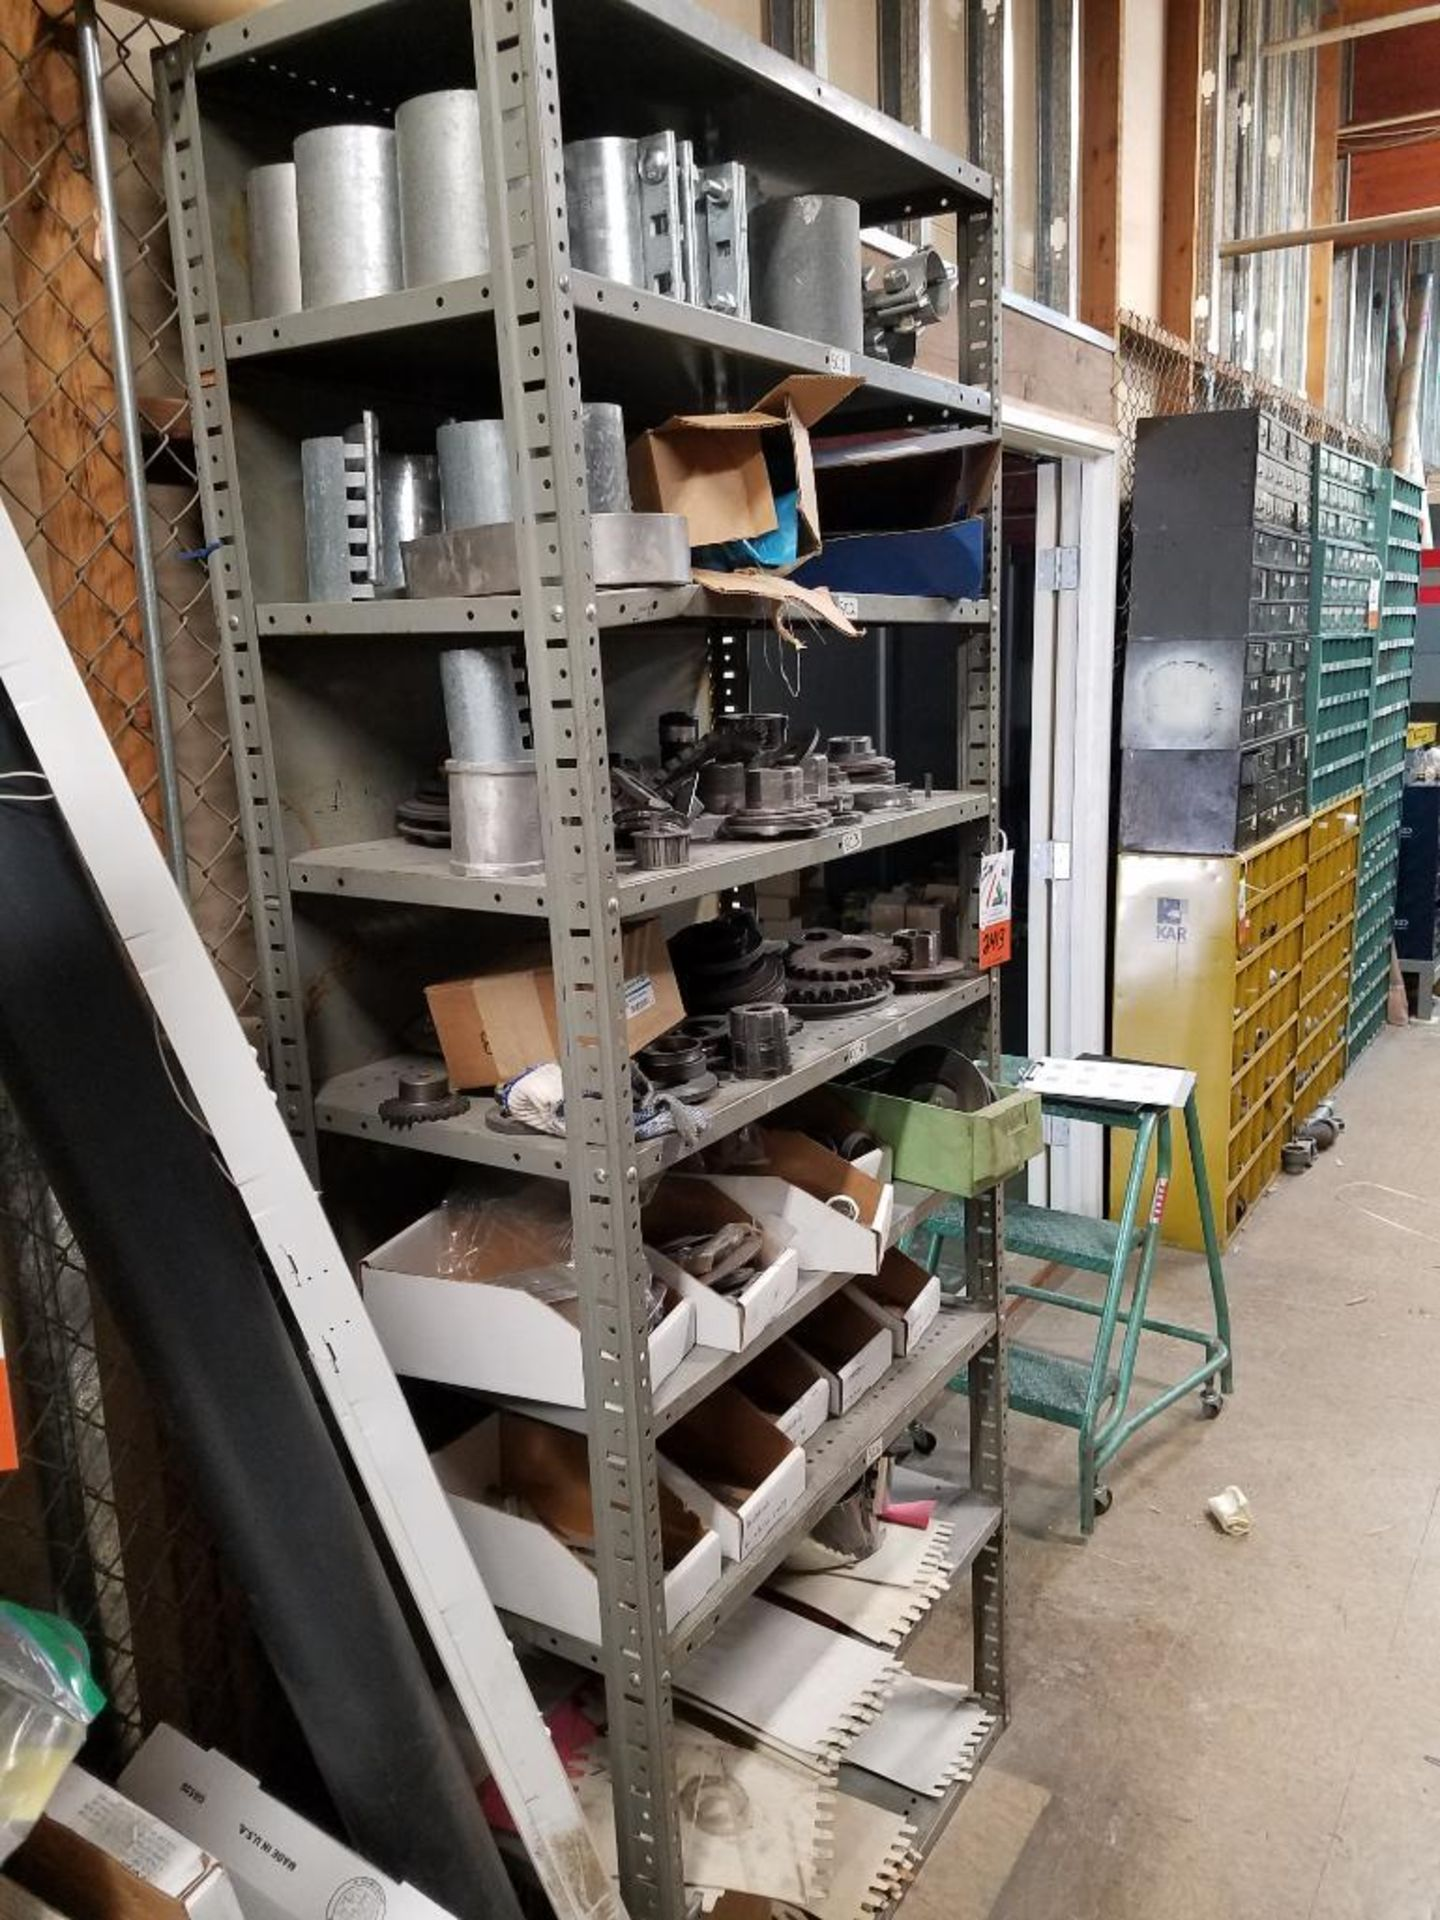 shelf, sprockets, gears, belts, and various parts - Image 2 of 5